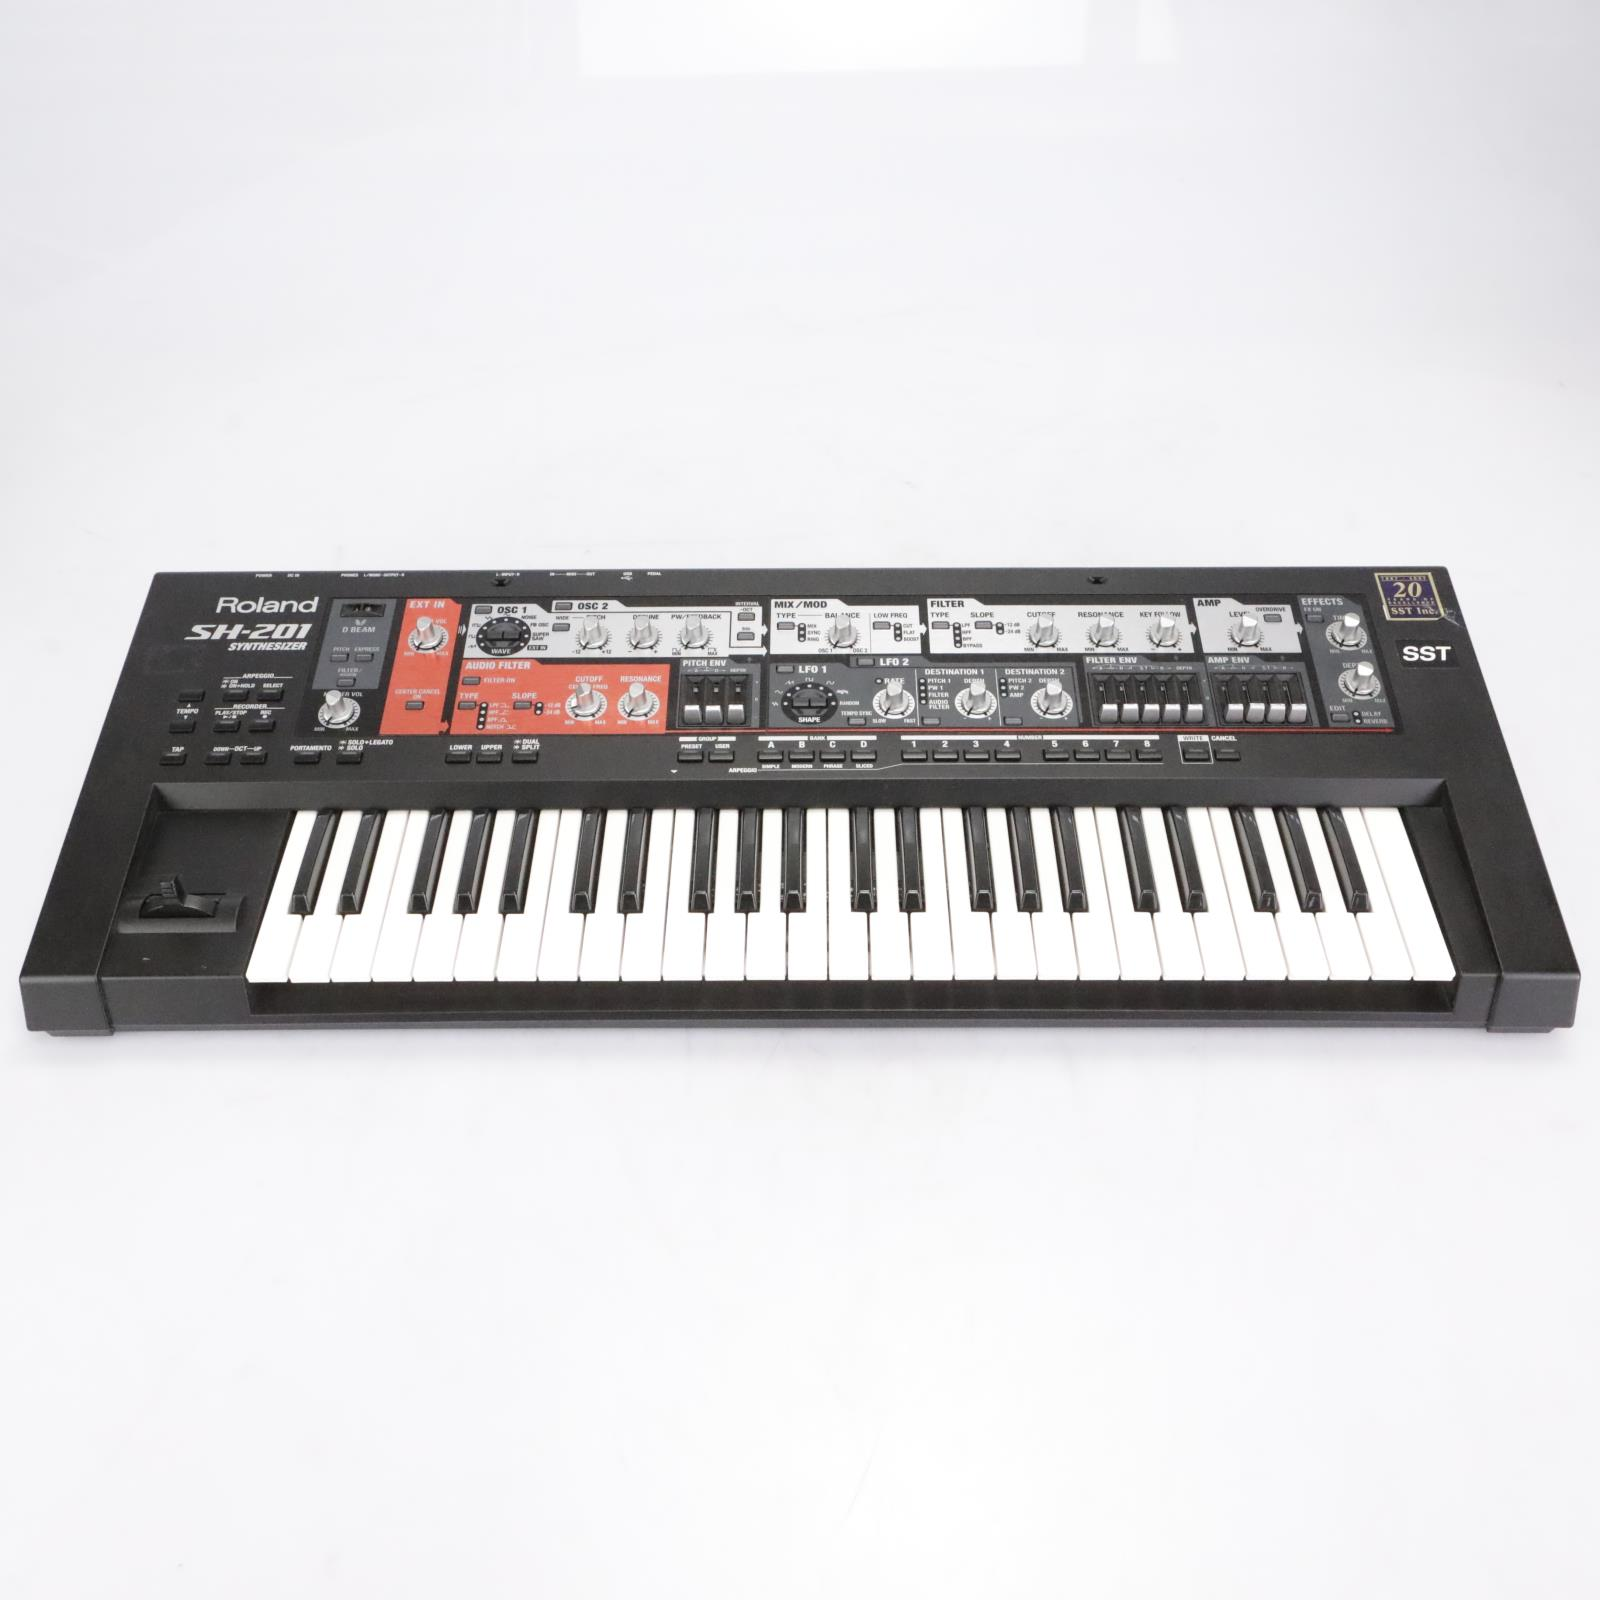 Roland SH-201 49 Key 10-Voice Polyphonic Analogue Synthesizer Keyboard #42225